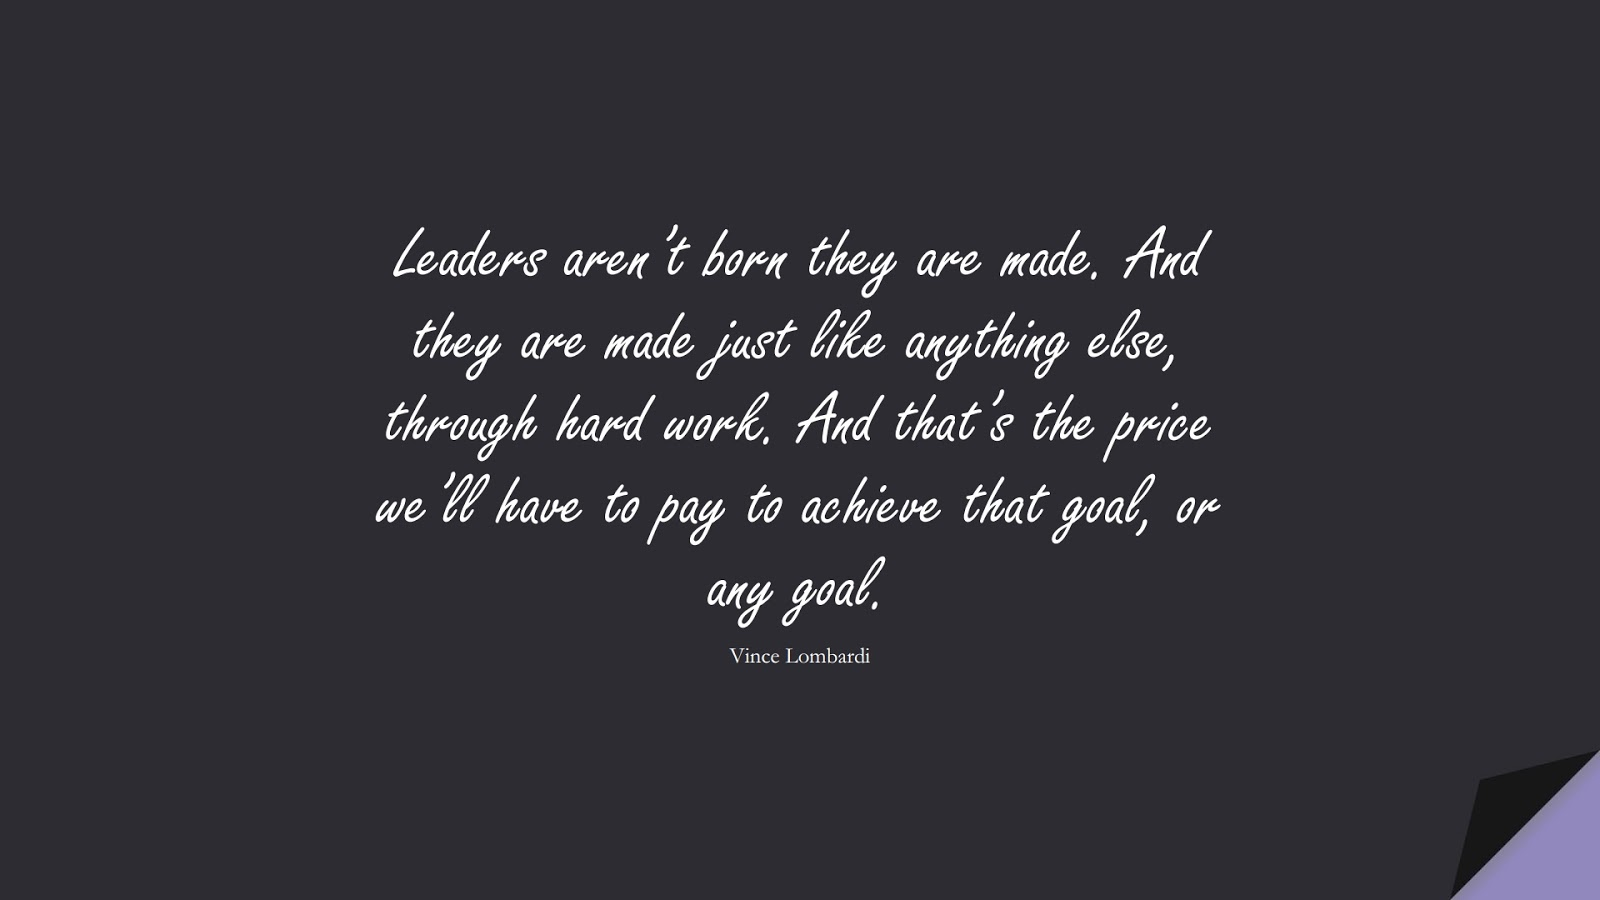 Leaders aren't born they are made. And they are made just like anything else, through hard work. And that's the price we'll have to pay to achieve that goal, or any goal. (Vince Lombardi);  #HardWorkQuotes